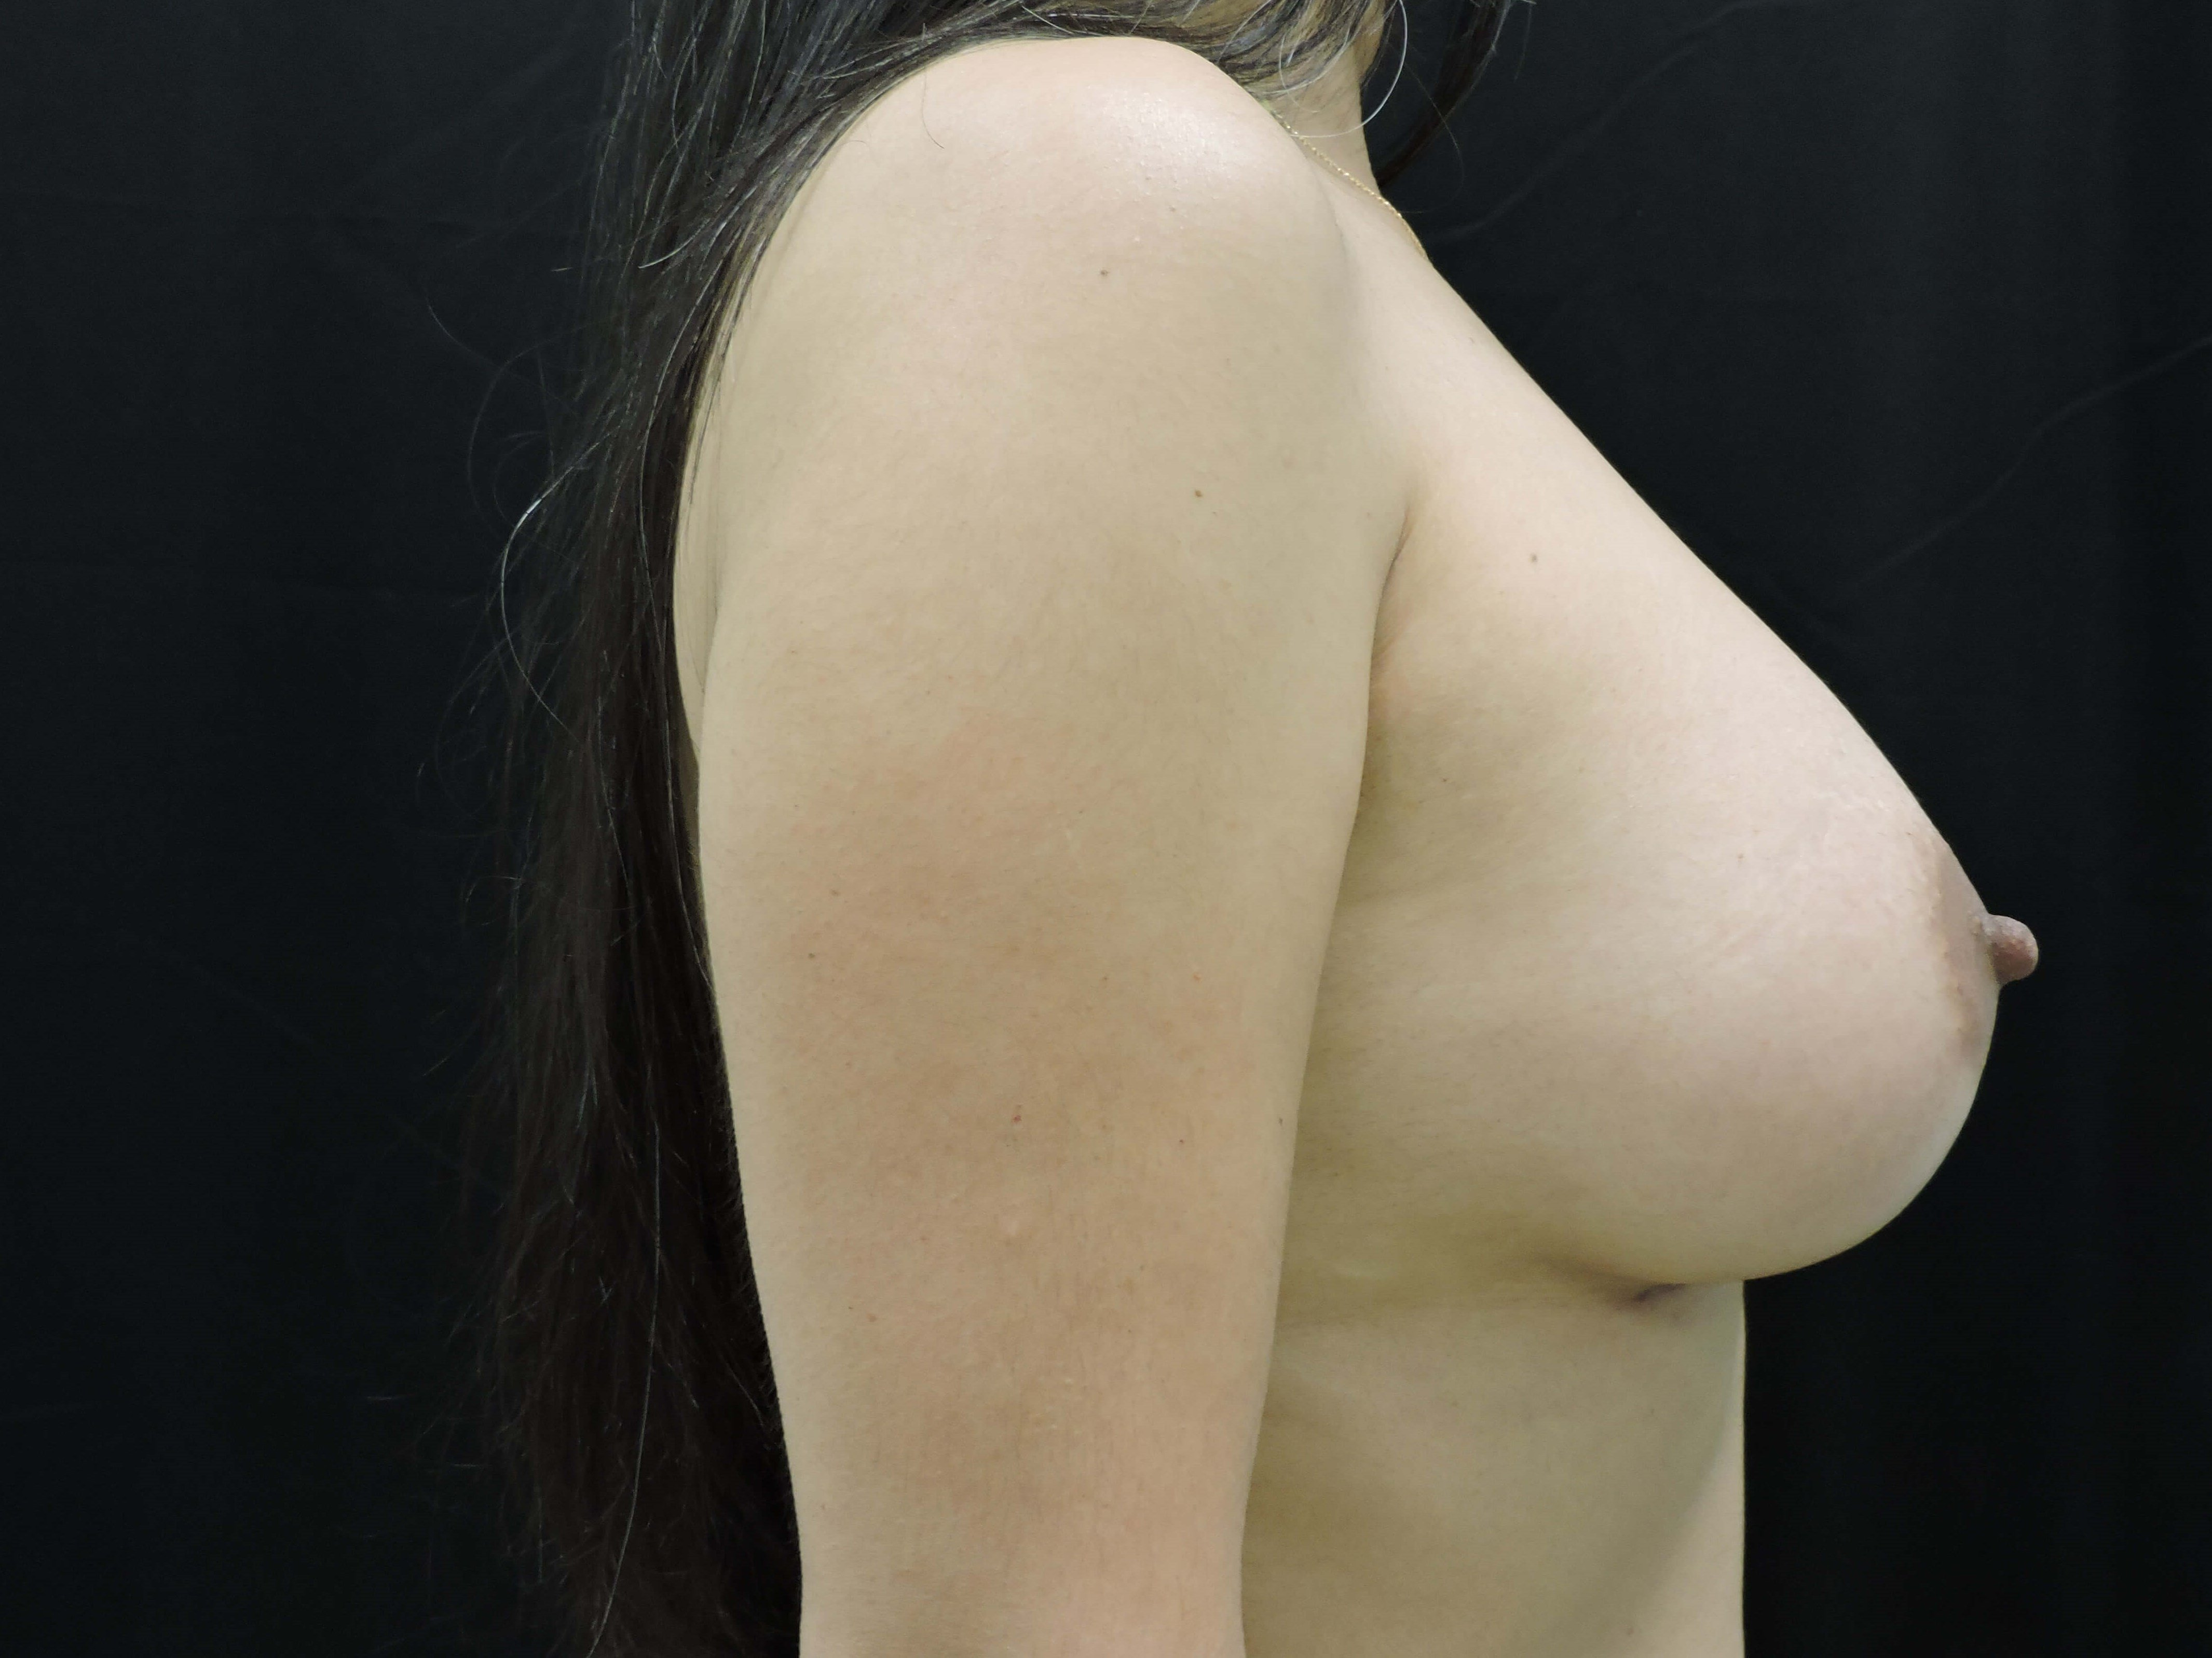 Side view - Oklahoma After - Breast Implants